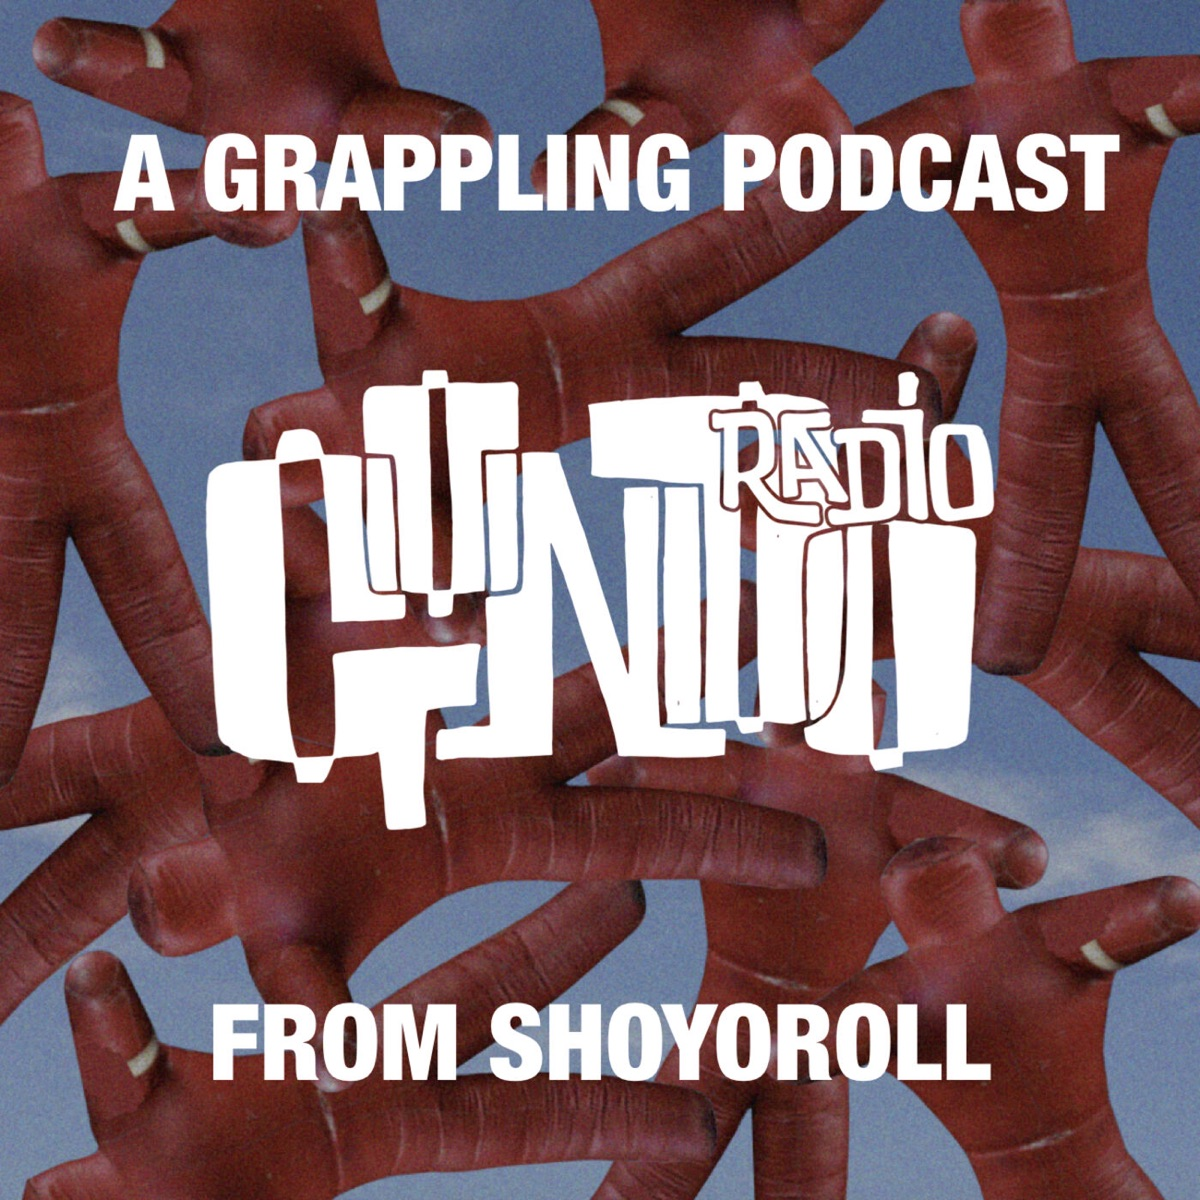 GONDO RADIO: A Grappling Podcast from Shoyoroll